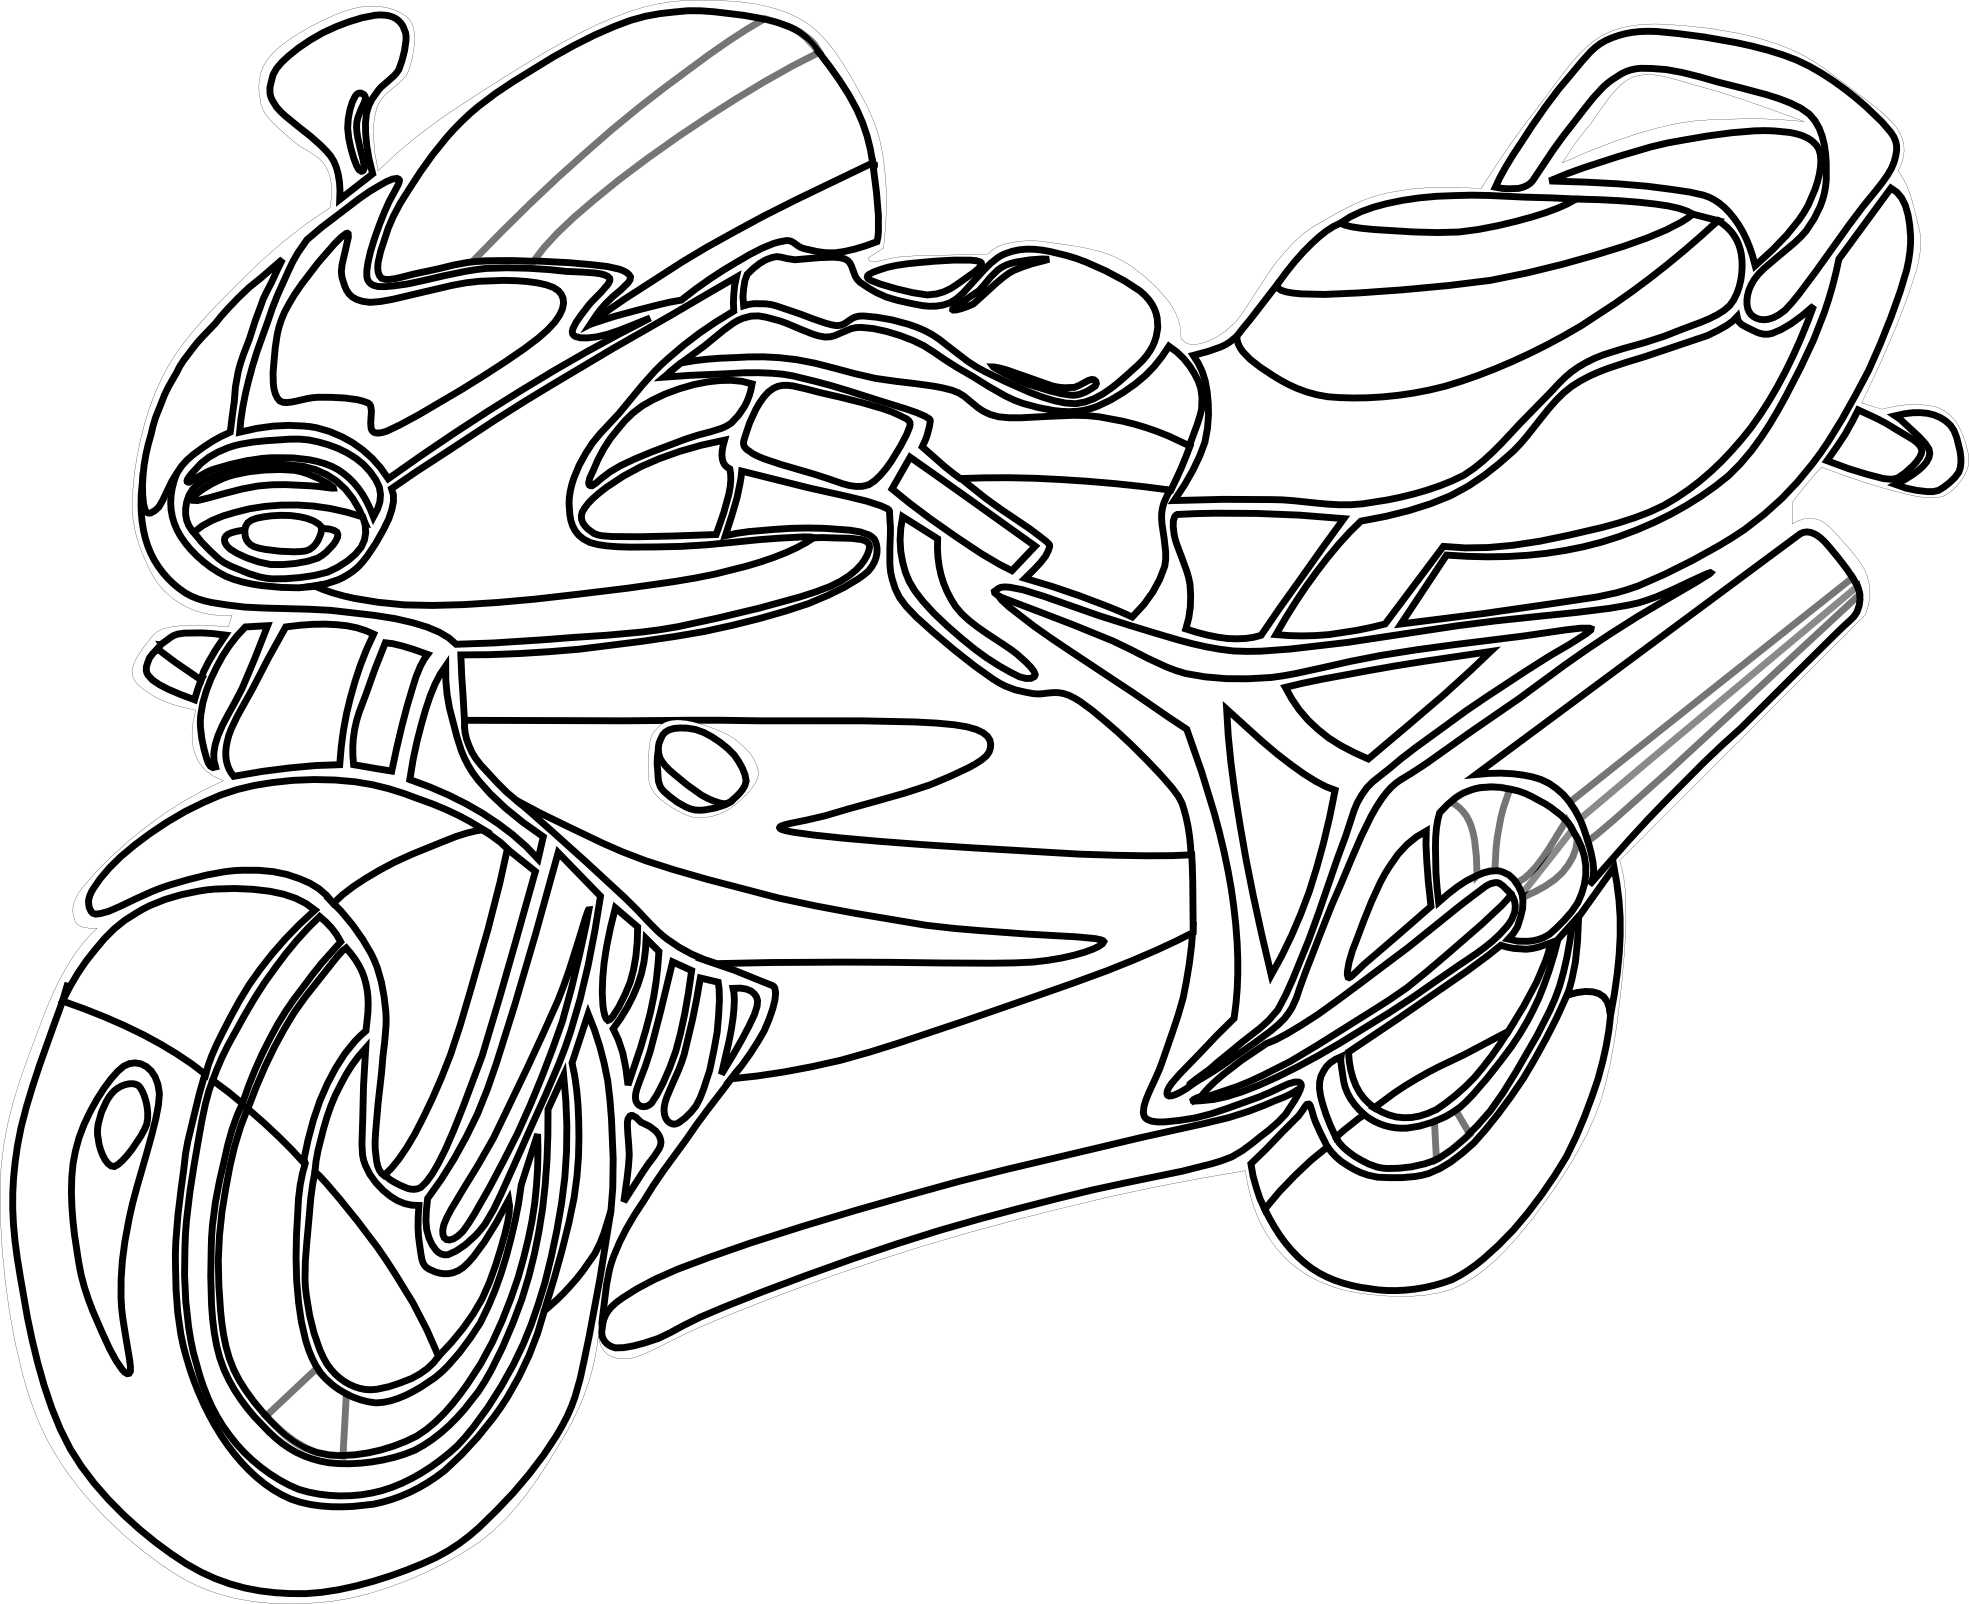 Goku Coloring Pages   Free download best Goku Coloring Pages on ...